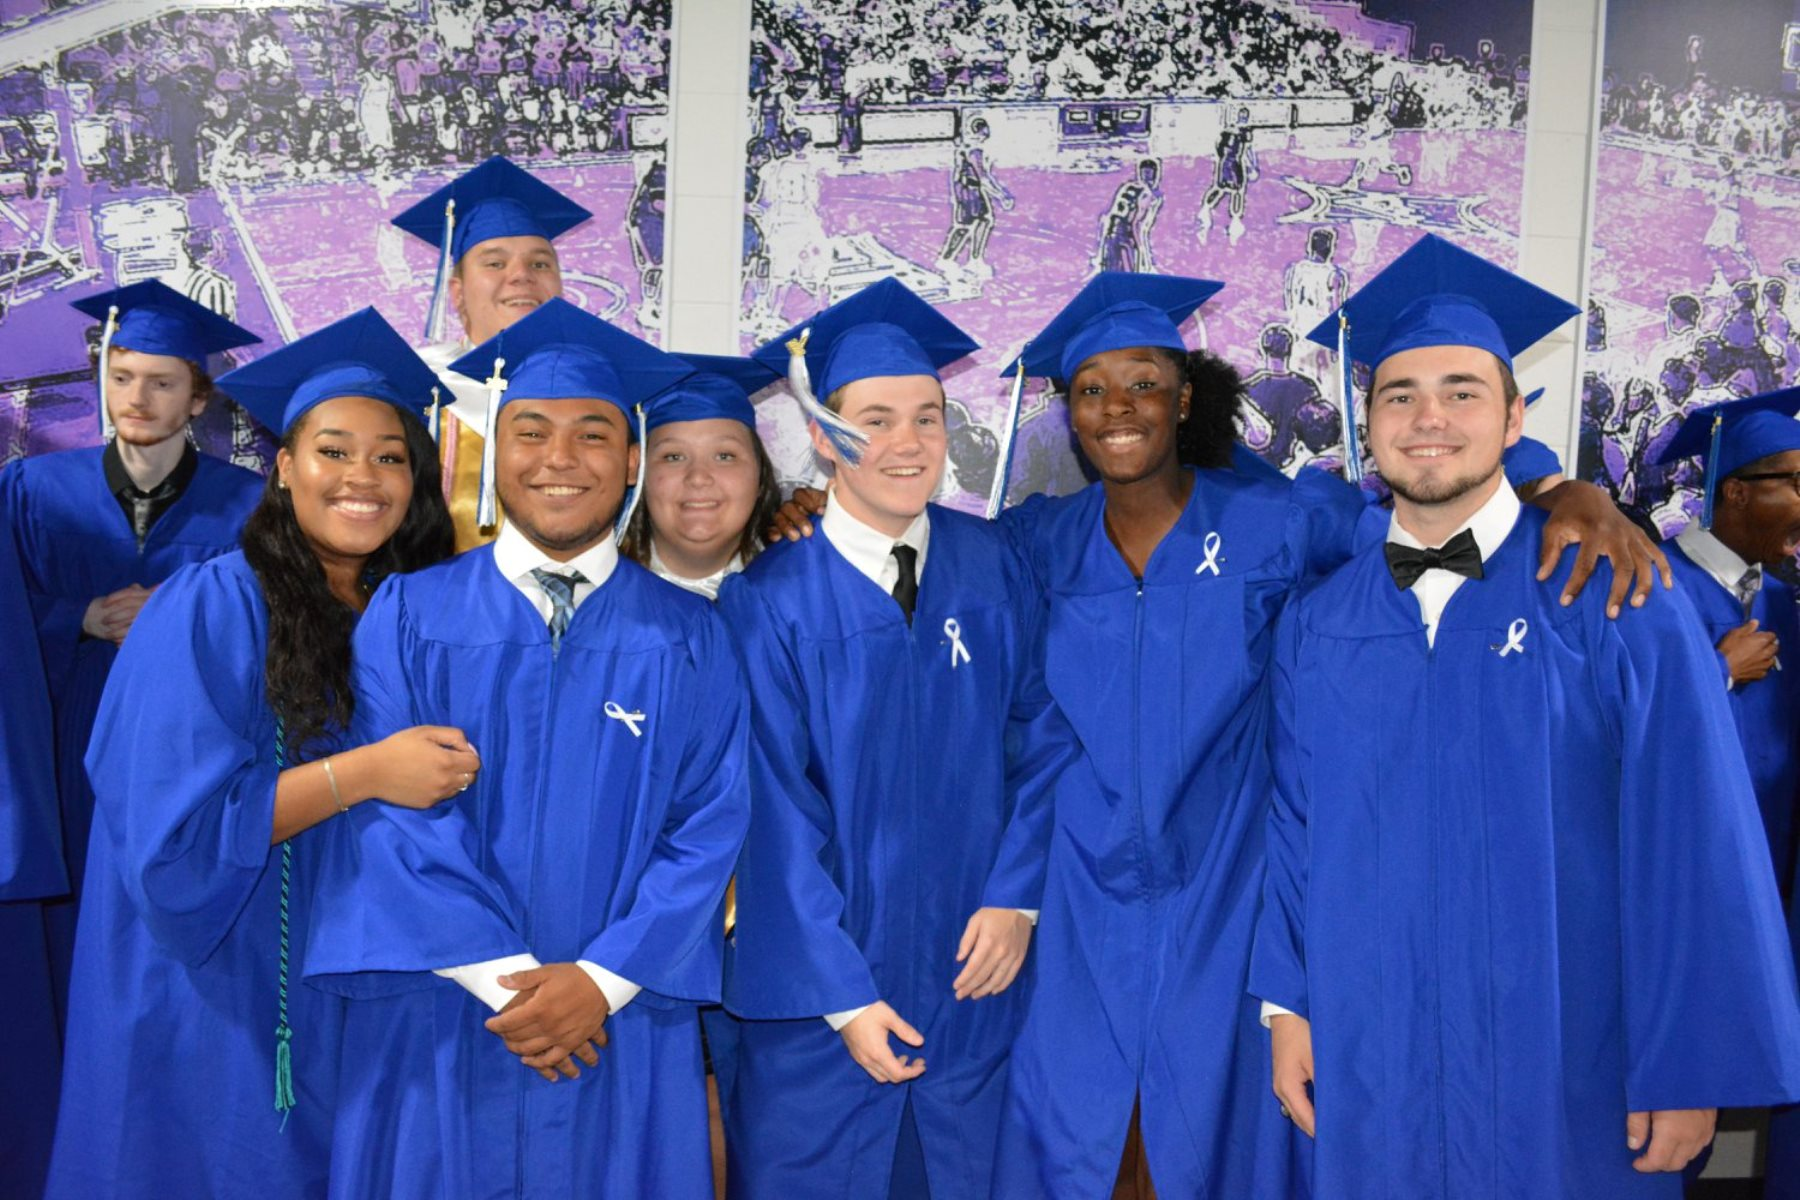 Group of high schools students in graduation regalia